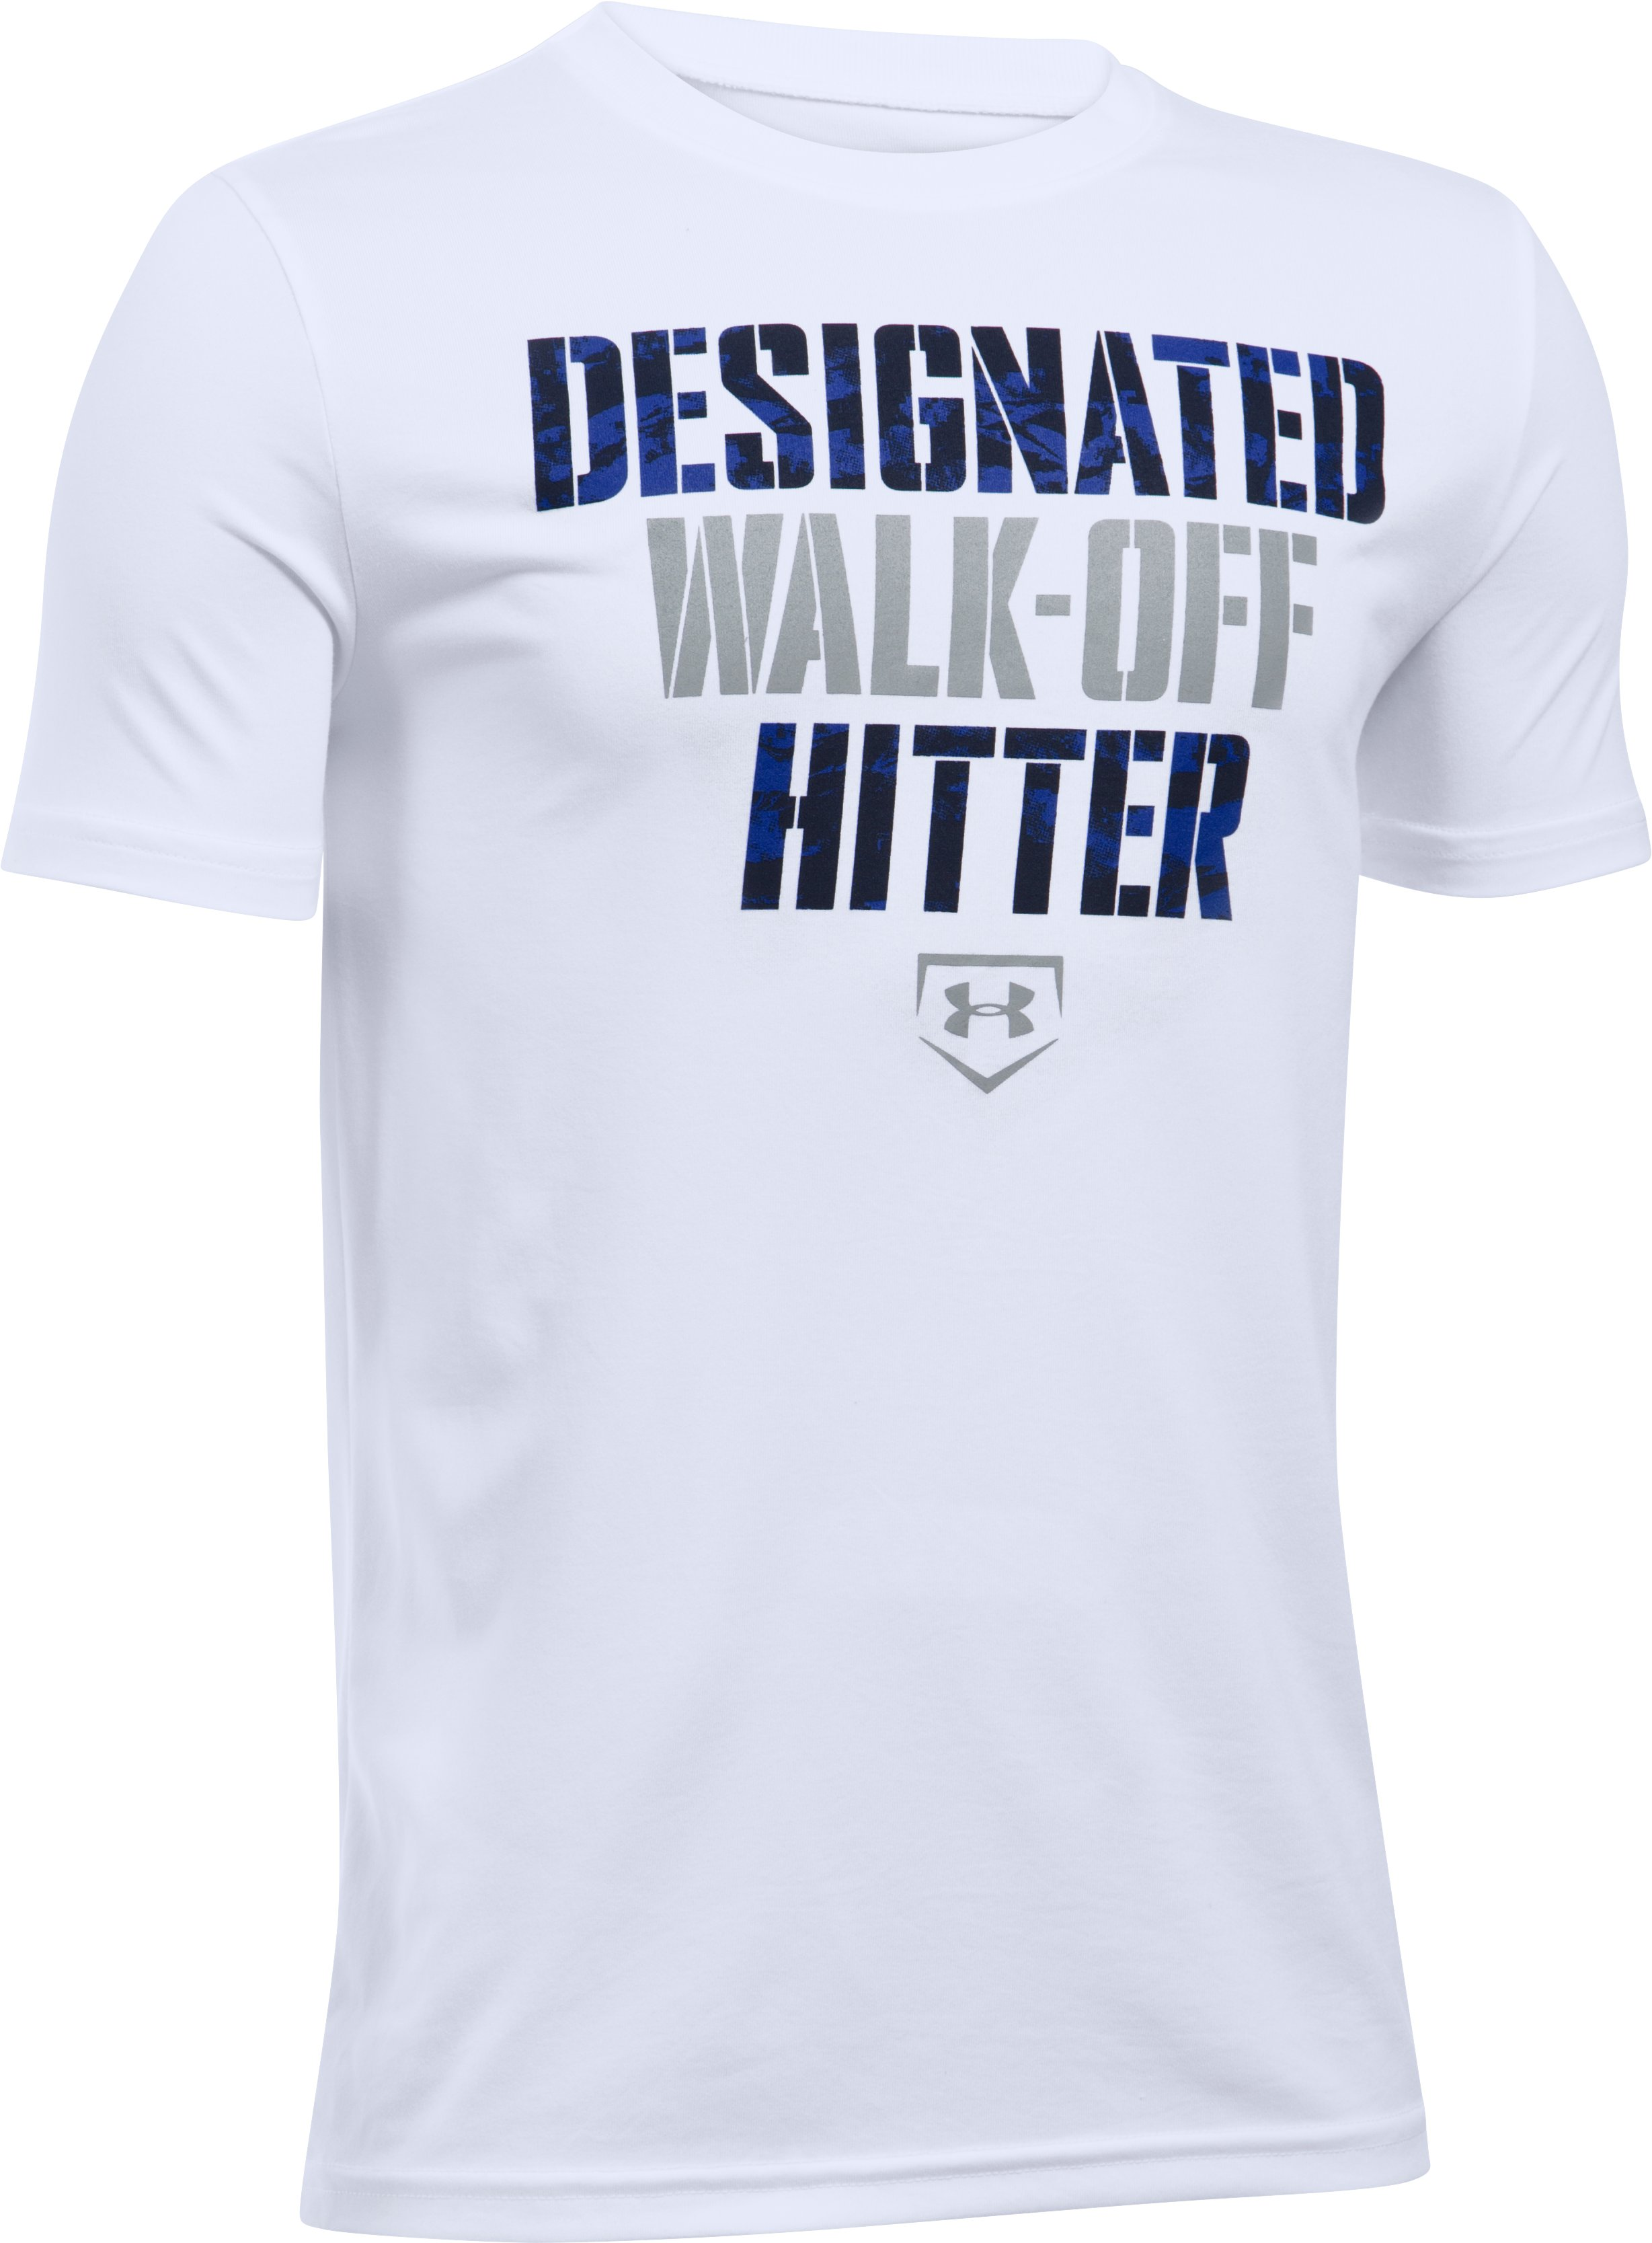 Boys' UA Designated Hitter T-Shirt, White, zoomed image